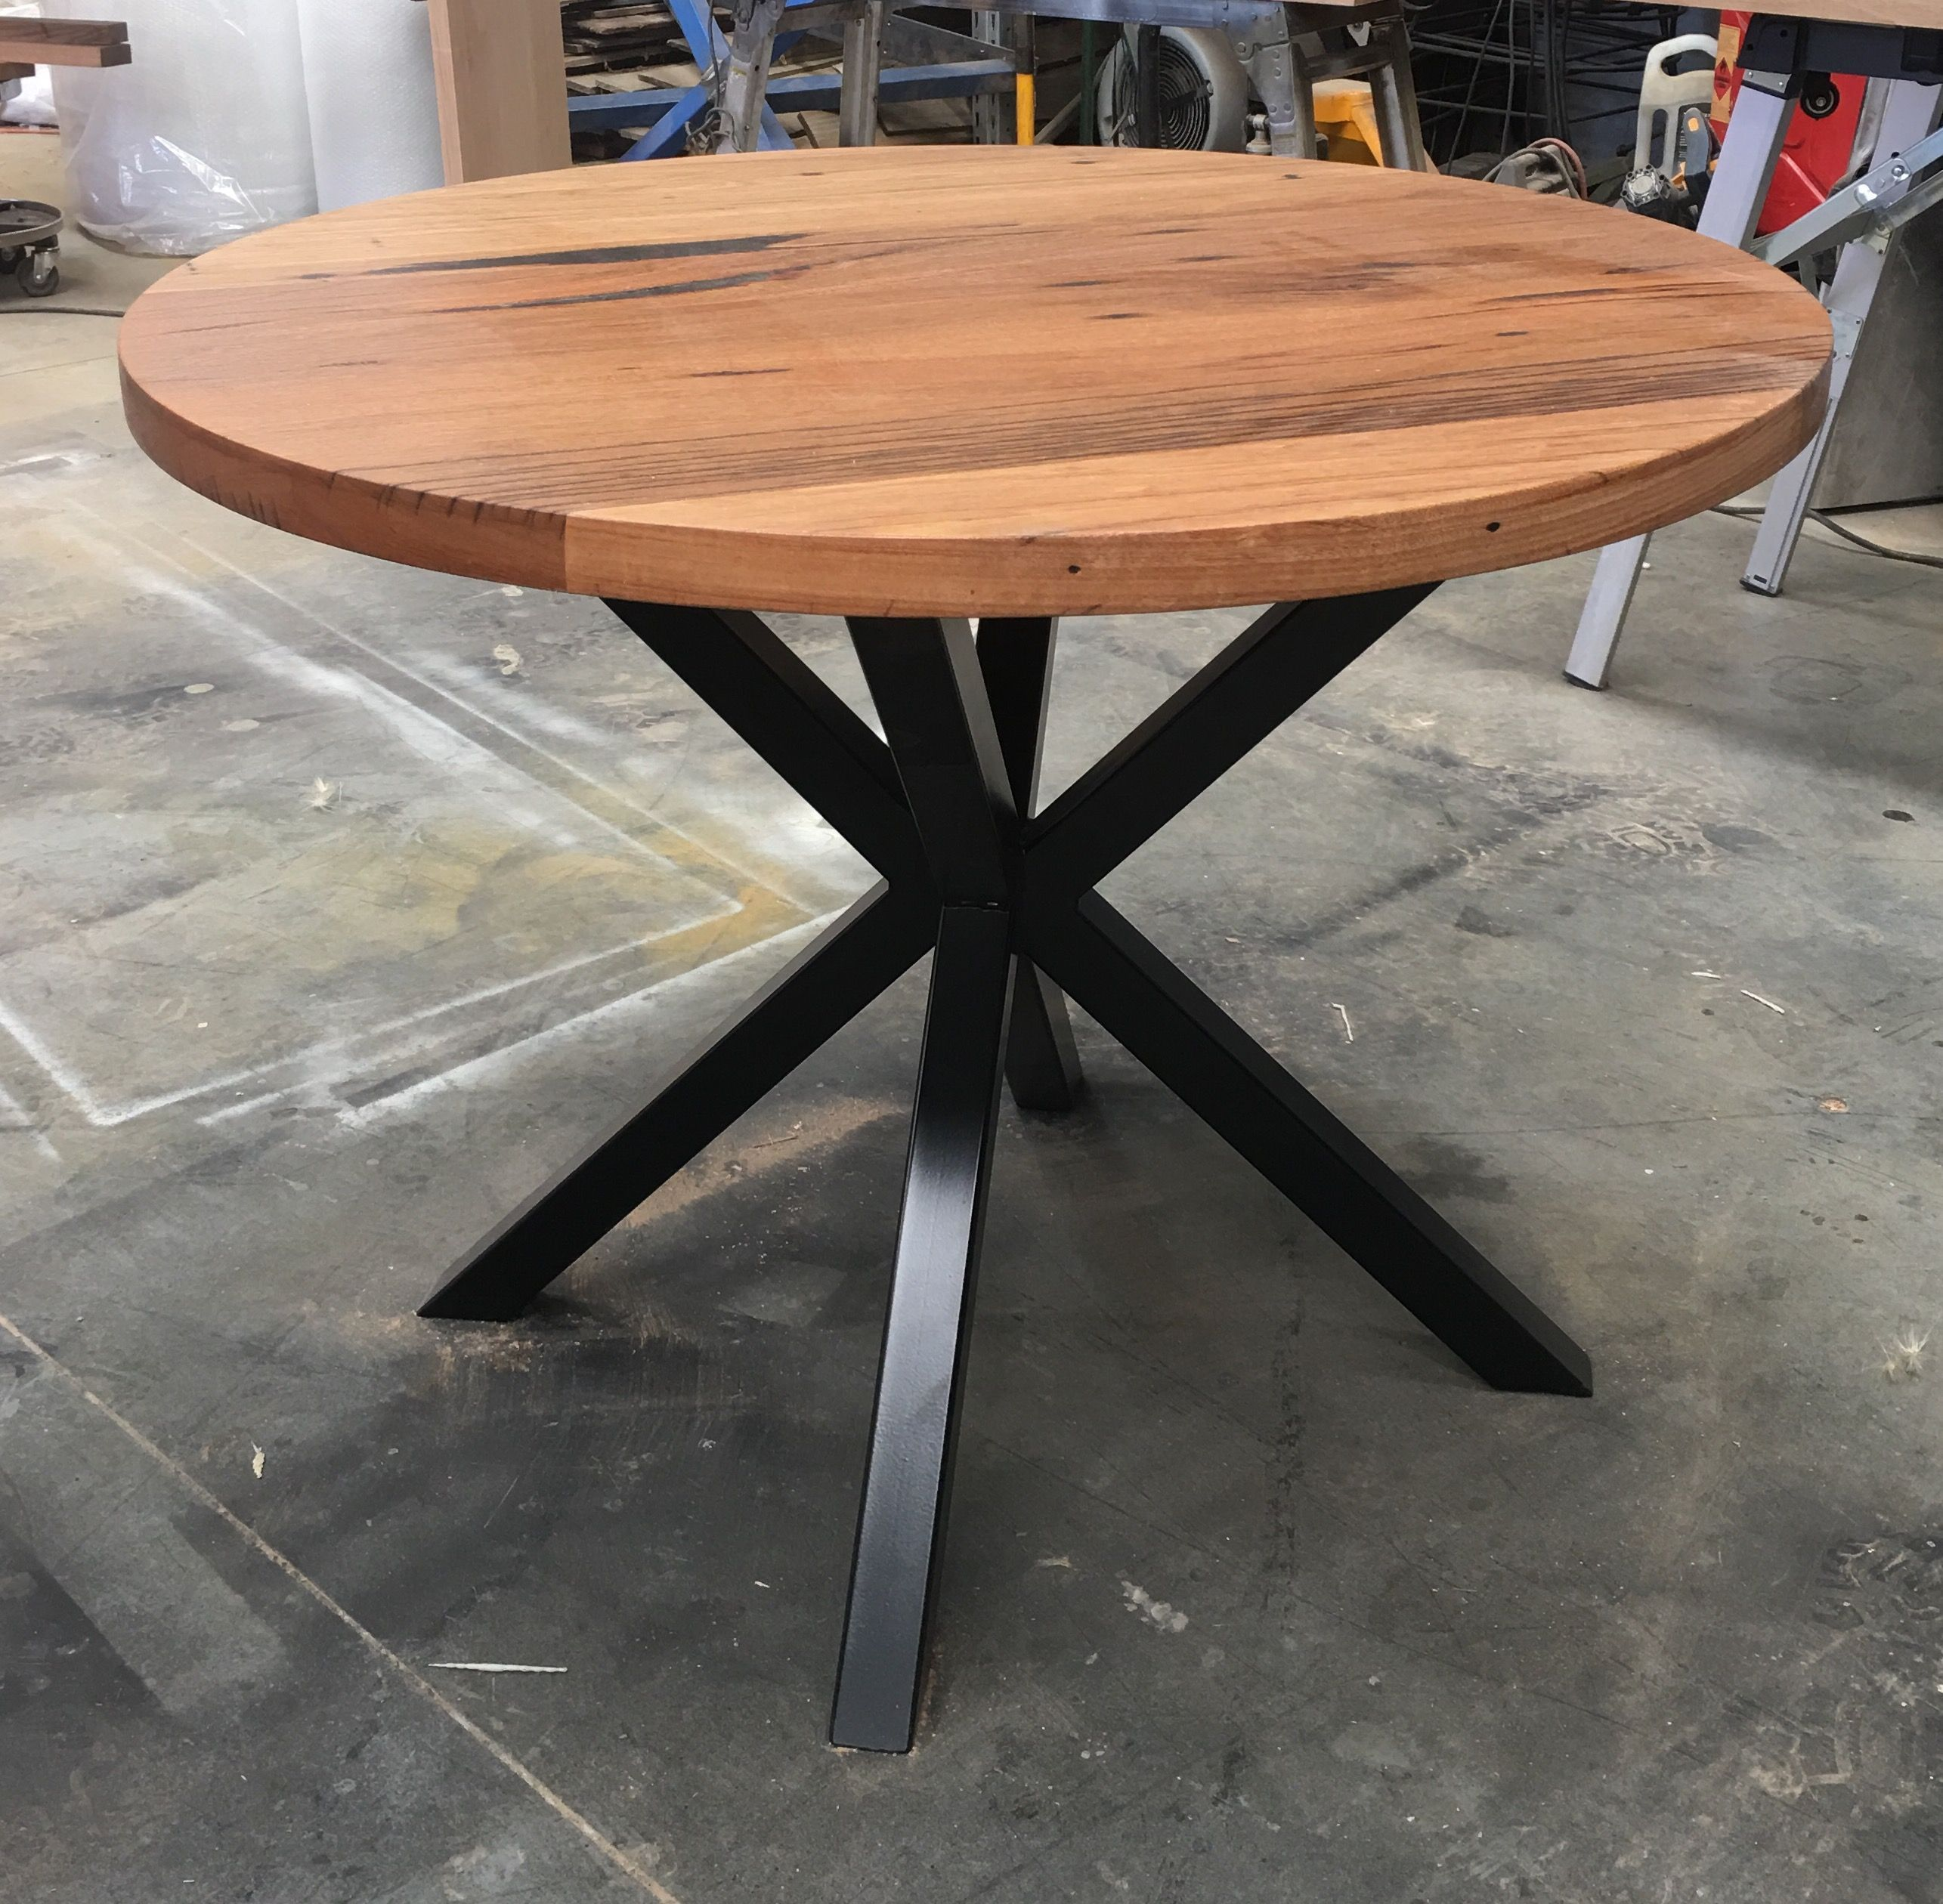 Kitchen Table Rounded Legskitchen Table Rounded Legs Ever End Up In The Kitchen At A House Cele Metal Leg Dining Table Round Dinning Table Round Dining Table